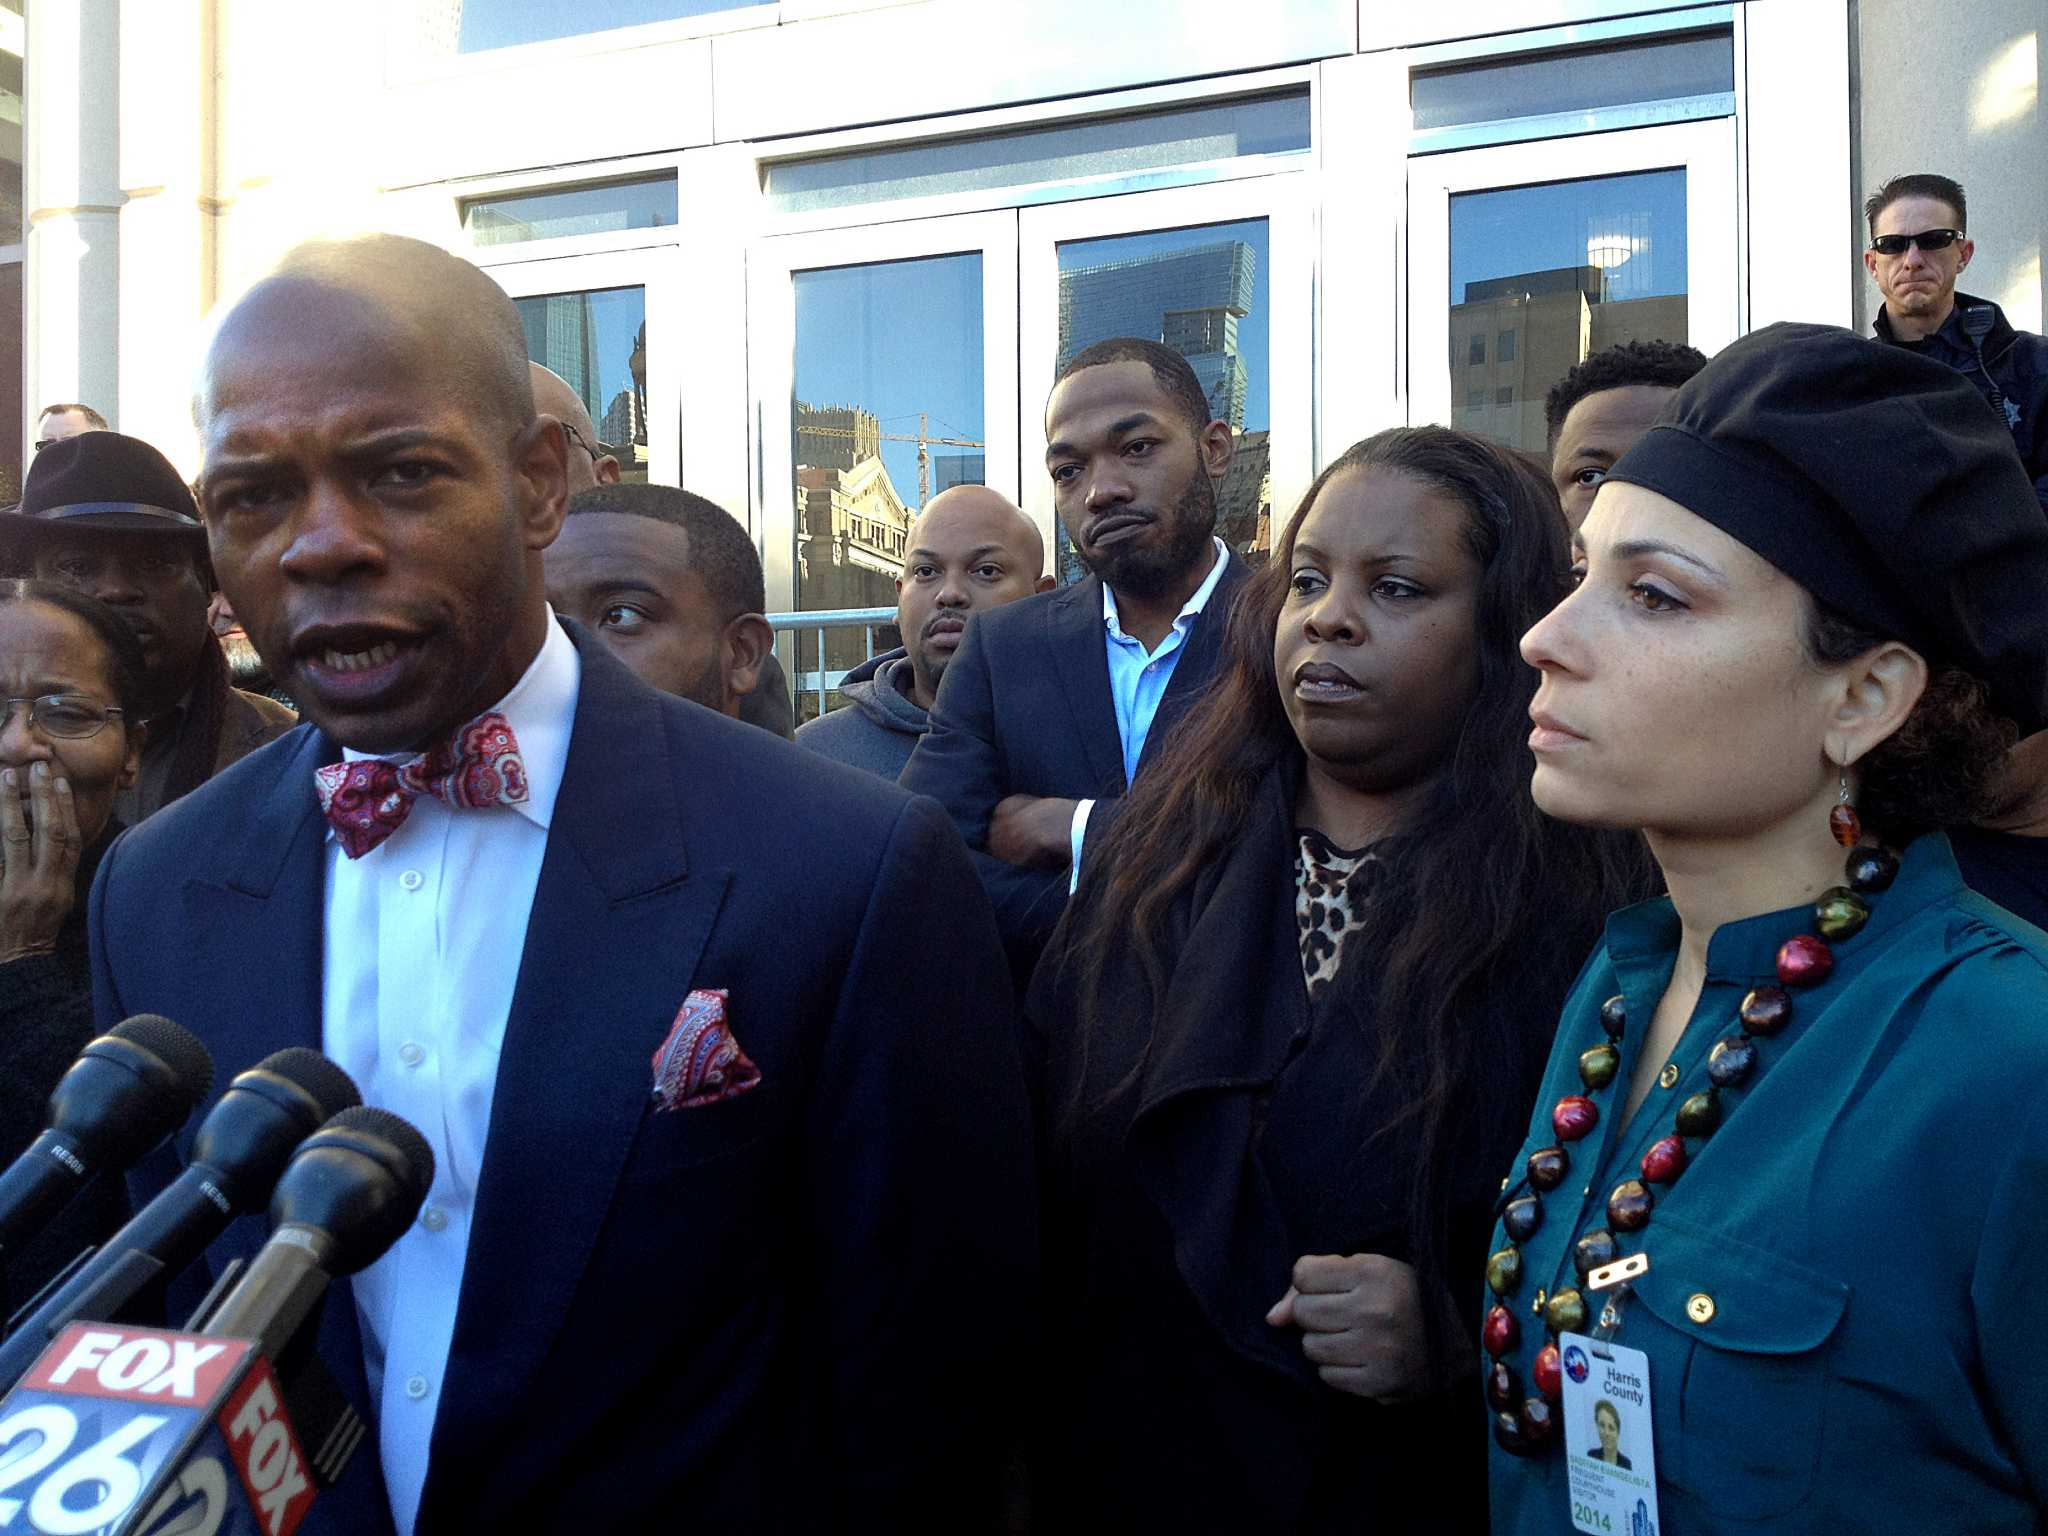 Grand jury decision looms in deadly off-duty police ...